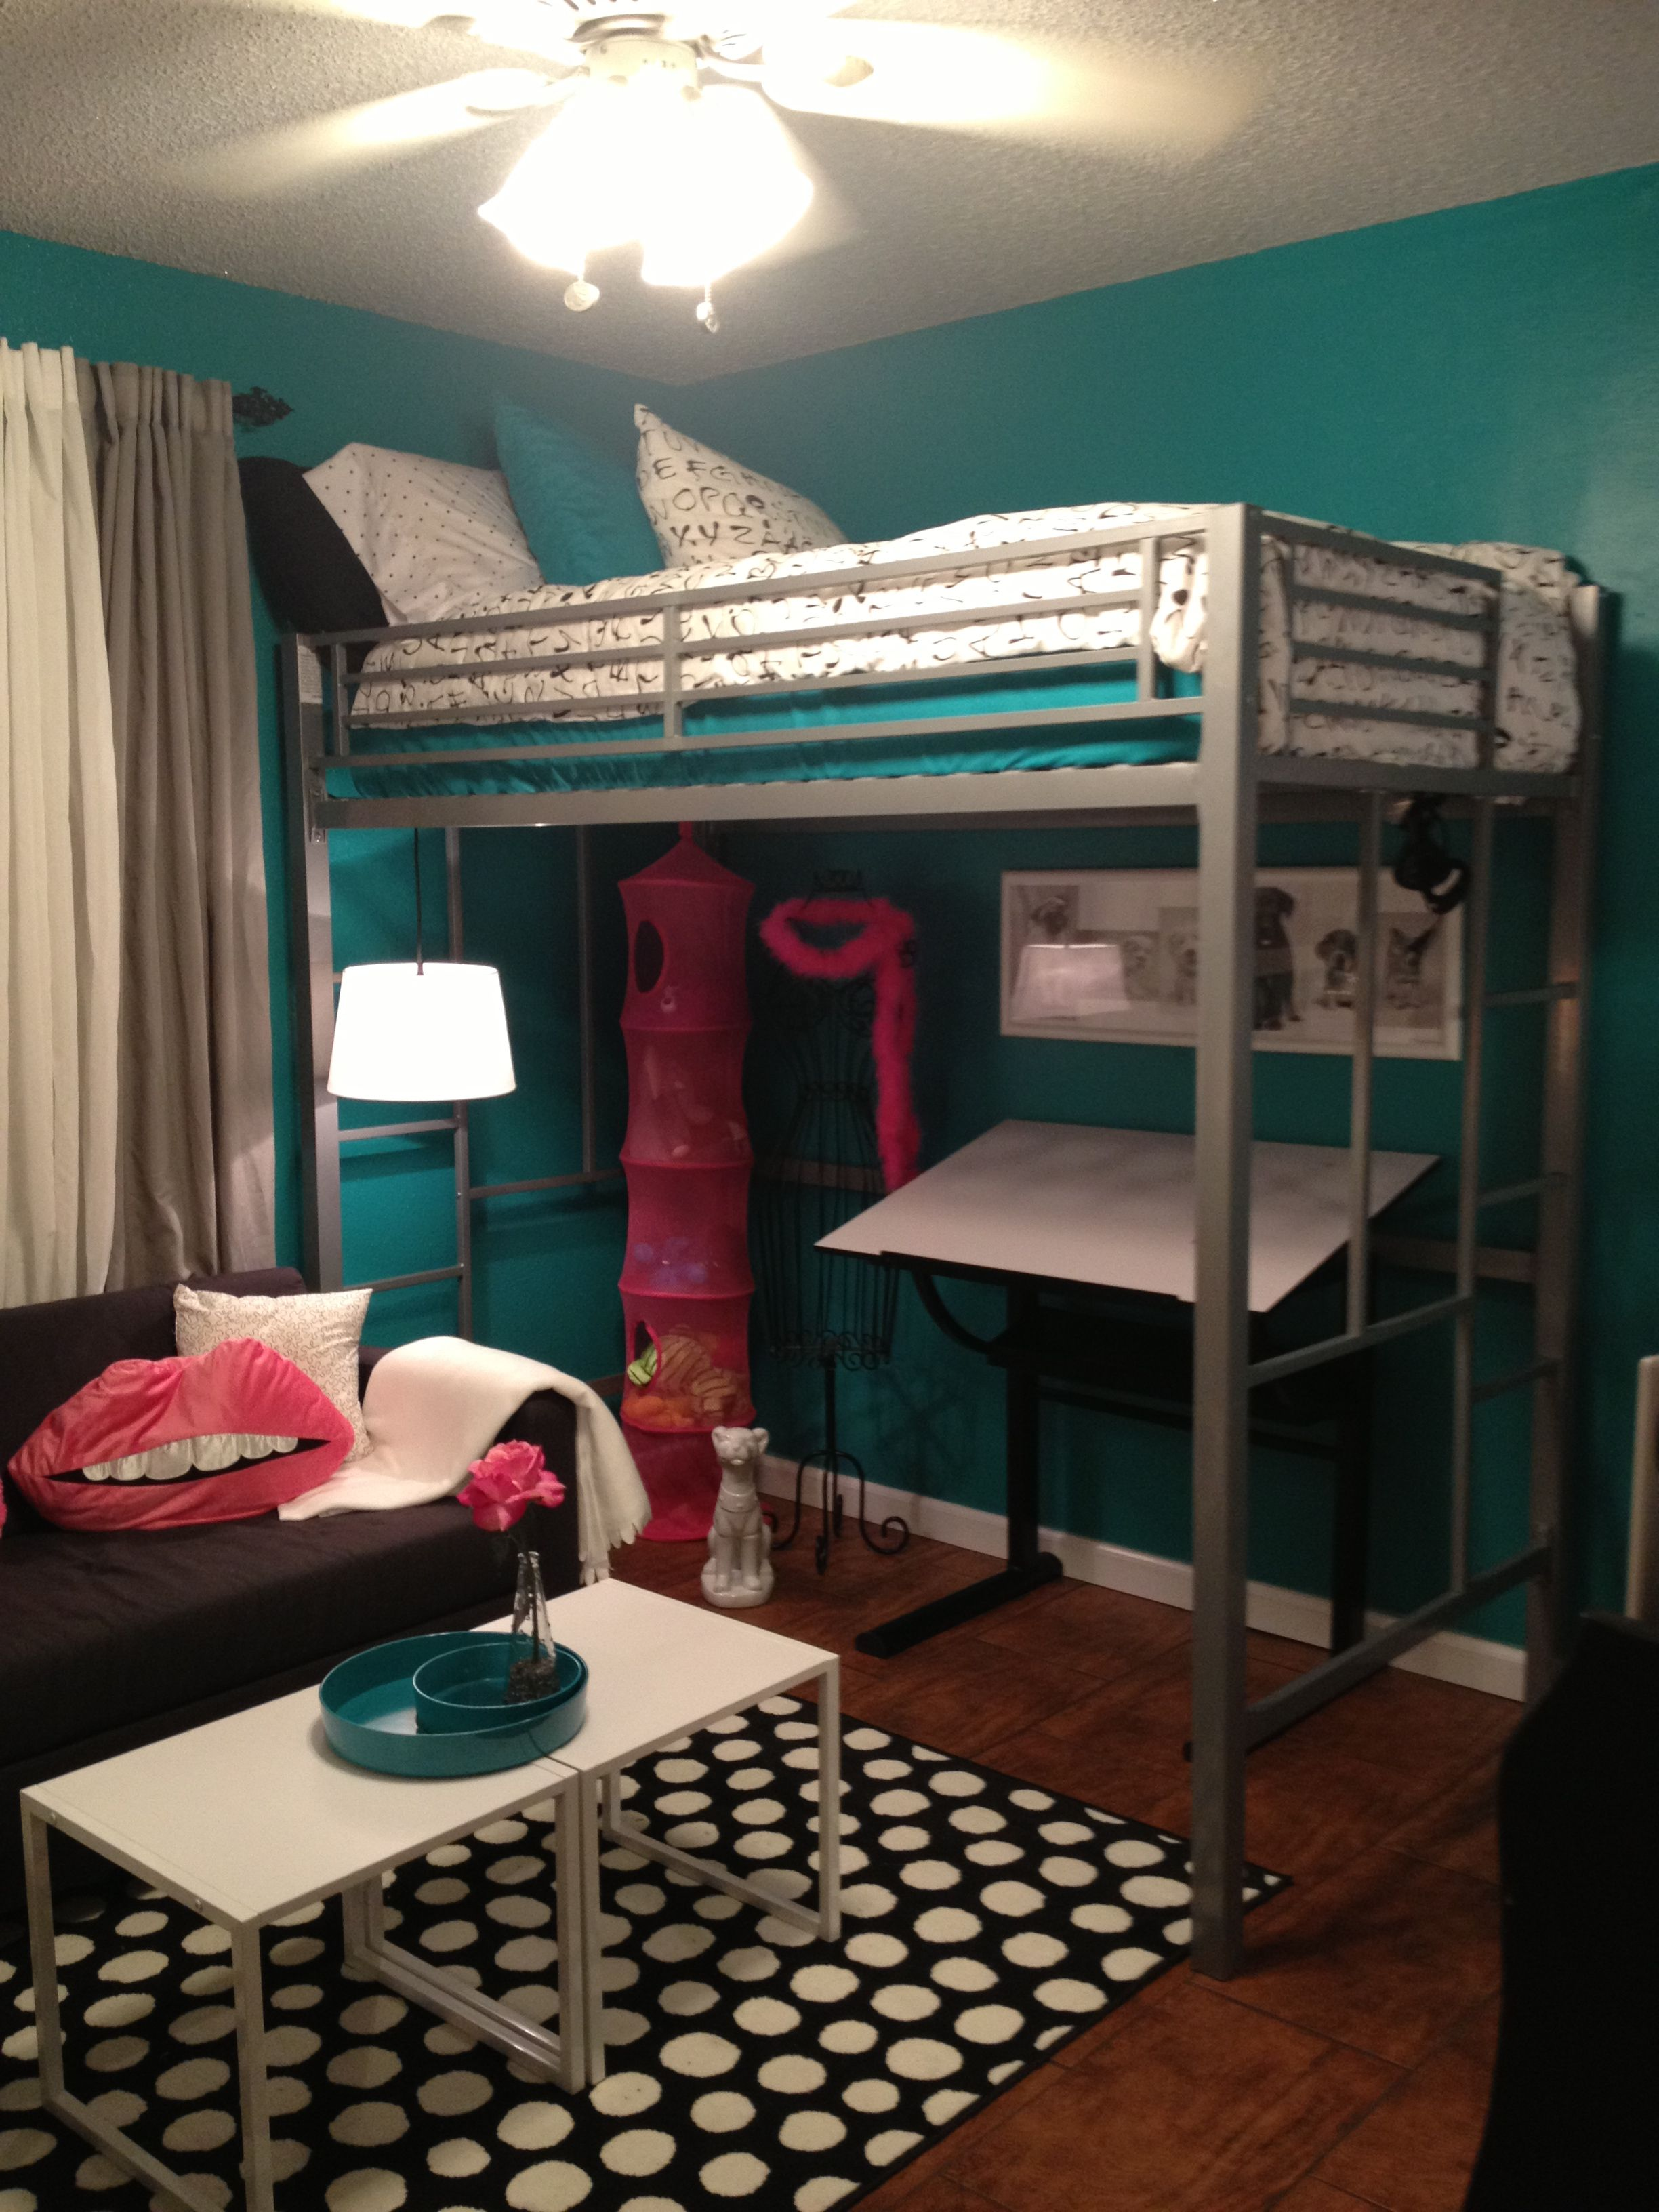 Teen Room Tween Room Bedroom Idea Loft Bed Black And White Teal Turquoise Hot Pink